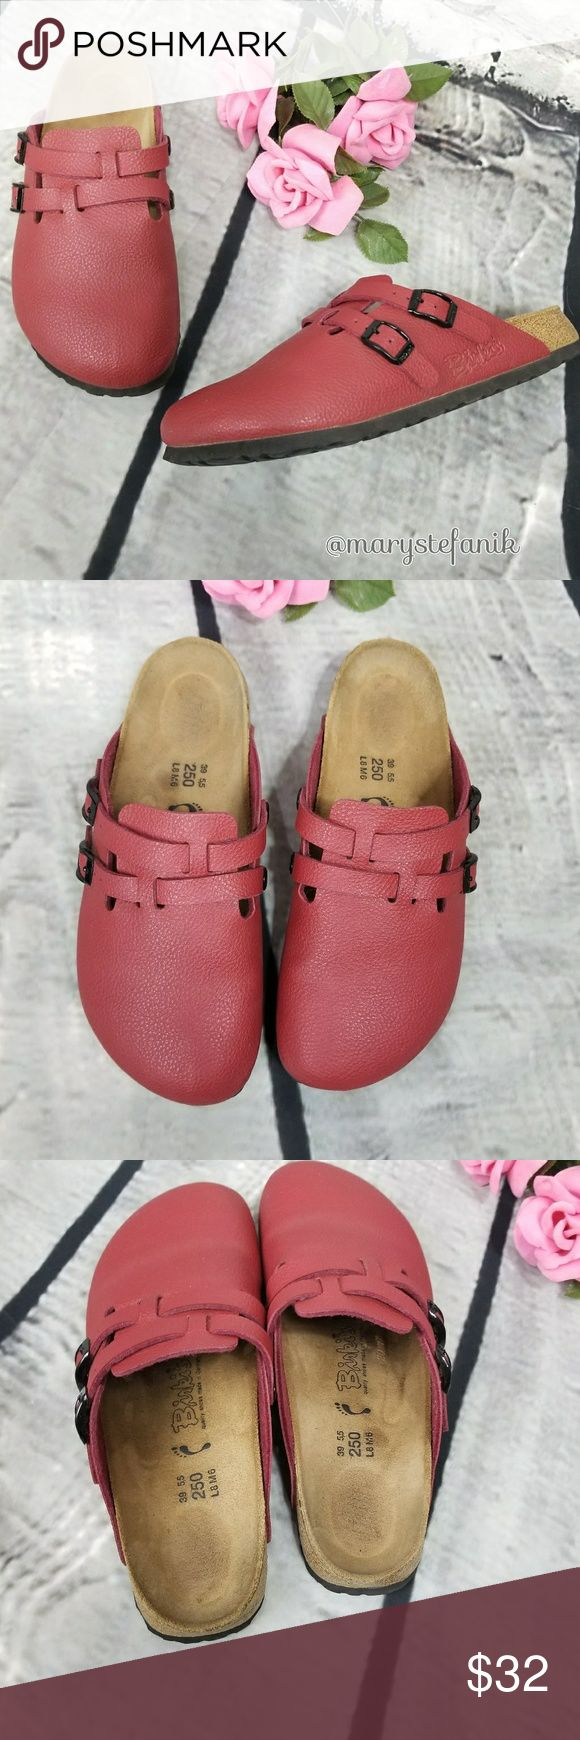 Birk's Red Mule Clog Footbed Sandals size 8 Birk's Red Mule Clog Footbed Sandals size 8 in great used condition. Minor imperfection shown in last picture. Some wear to the interior. Perfect for summer!  Please let me know if you have any questions. Happy Poshing! Birkenstock Shoes Mules & Clogs